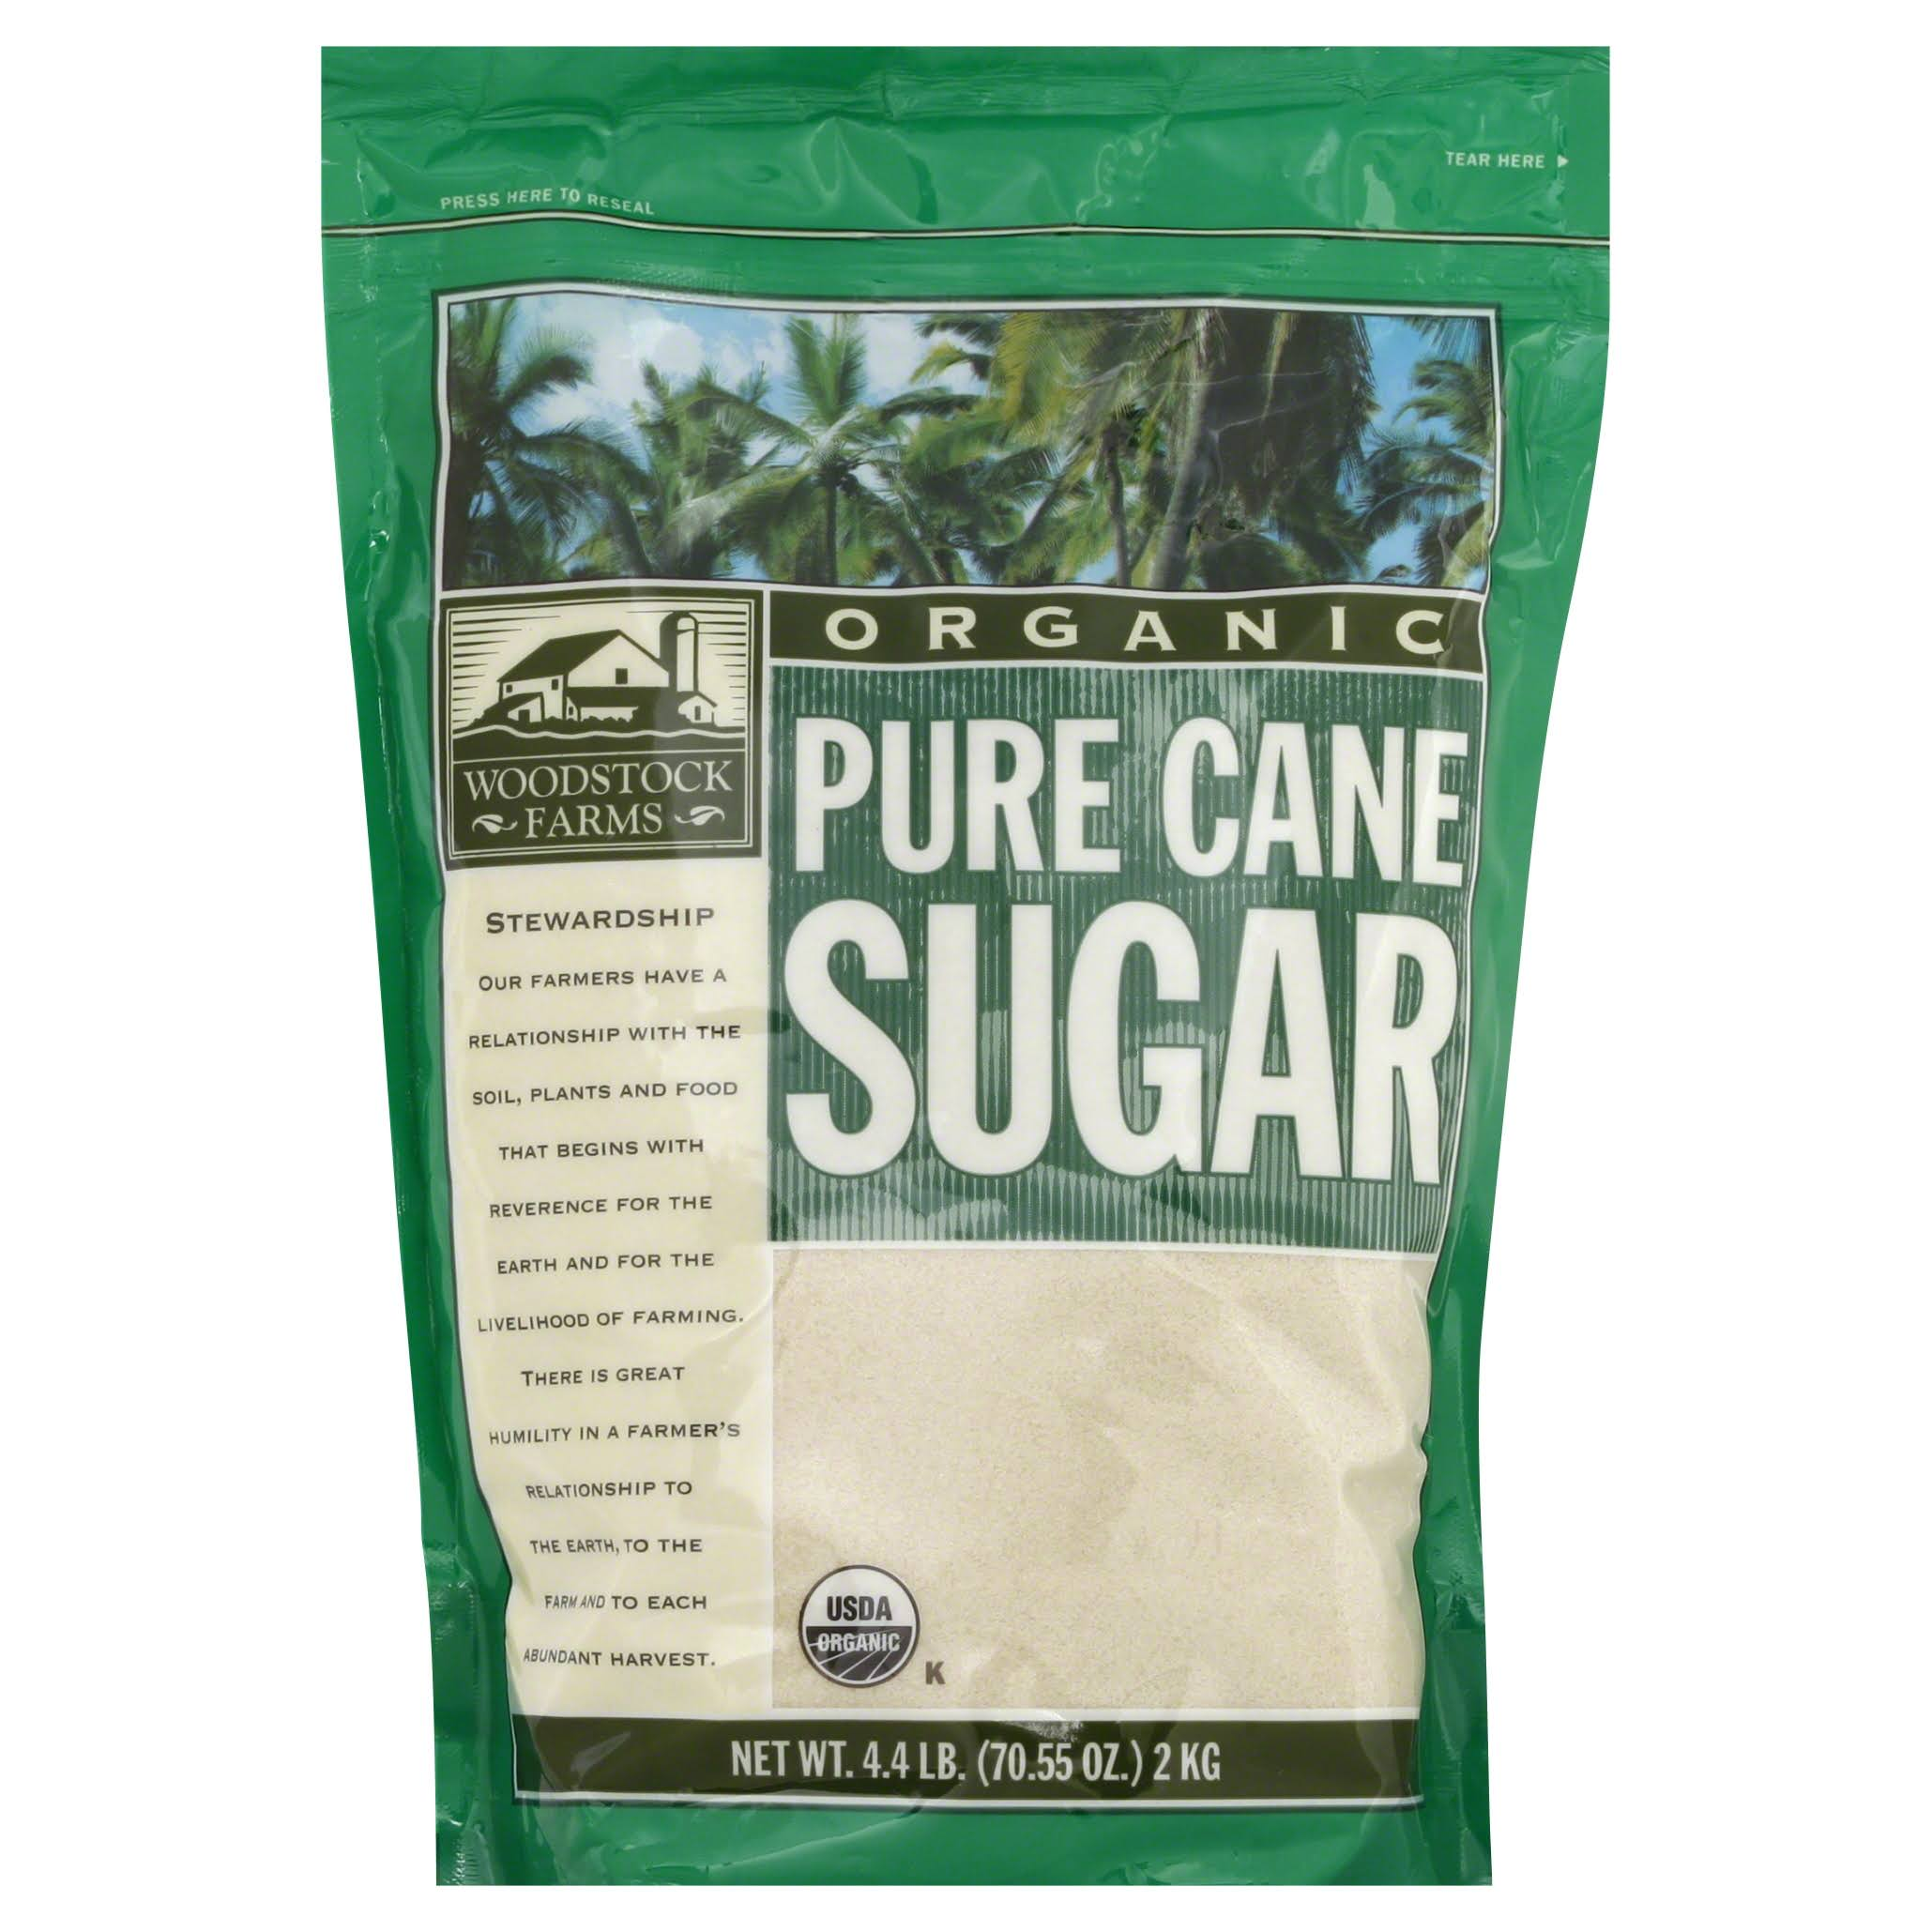 Woodstock Farms Granulated Pure Cane Sugar - 4.4 lb pouch